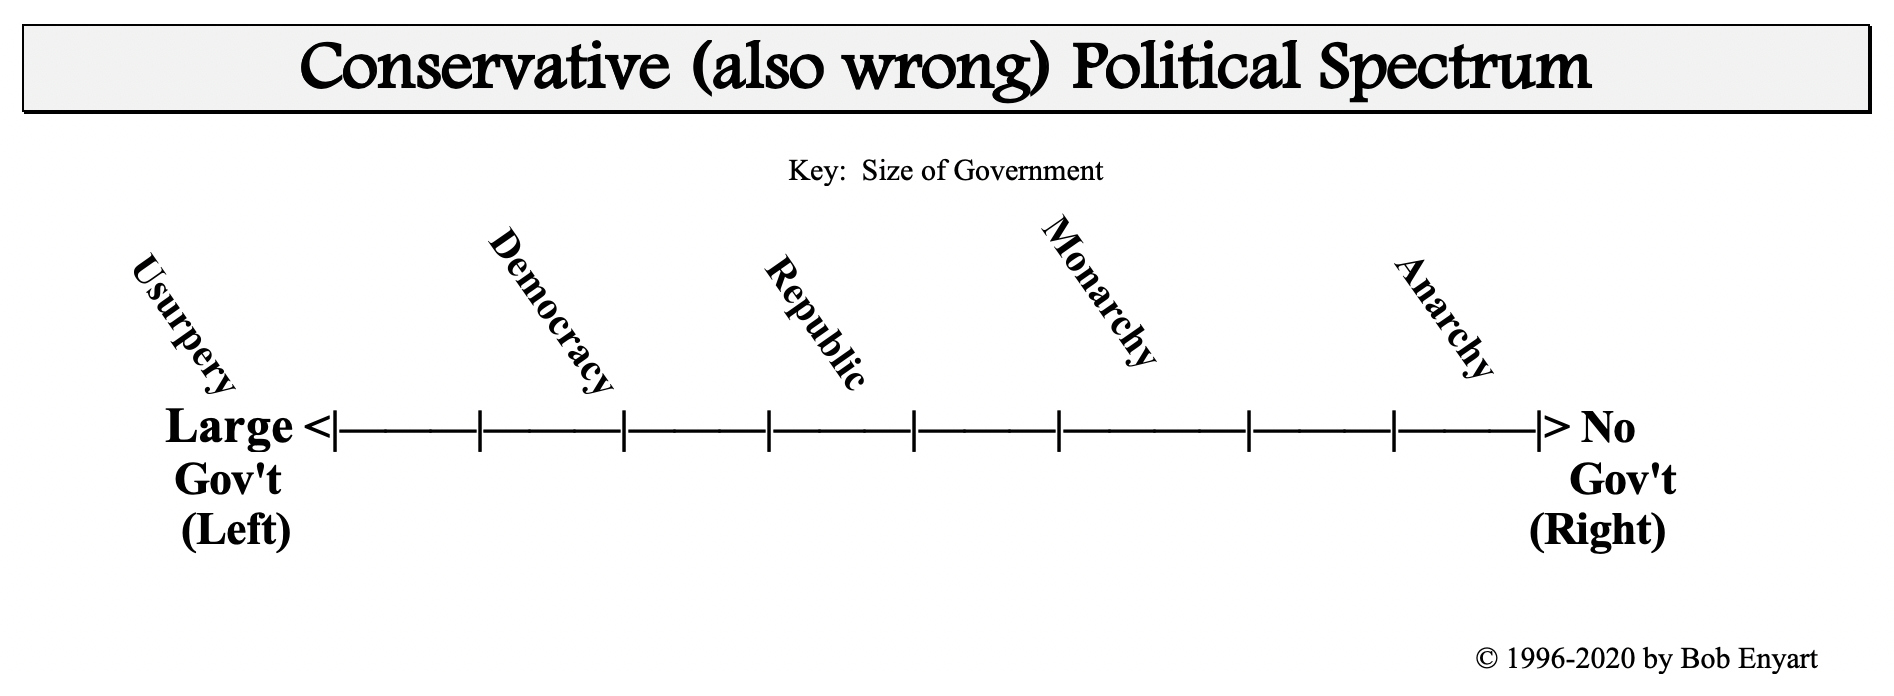 The typical conservative political spectrum concept, like the liberal concept, is also wrong